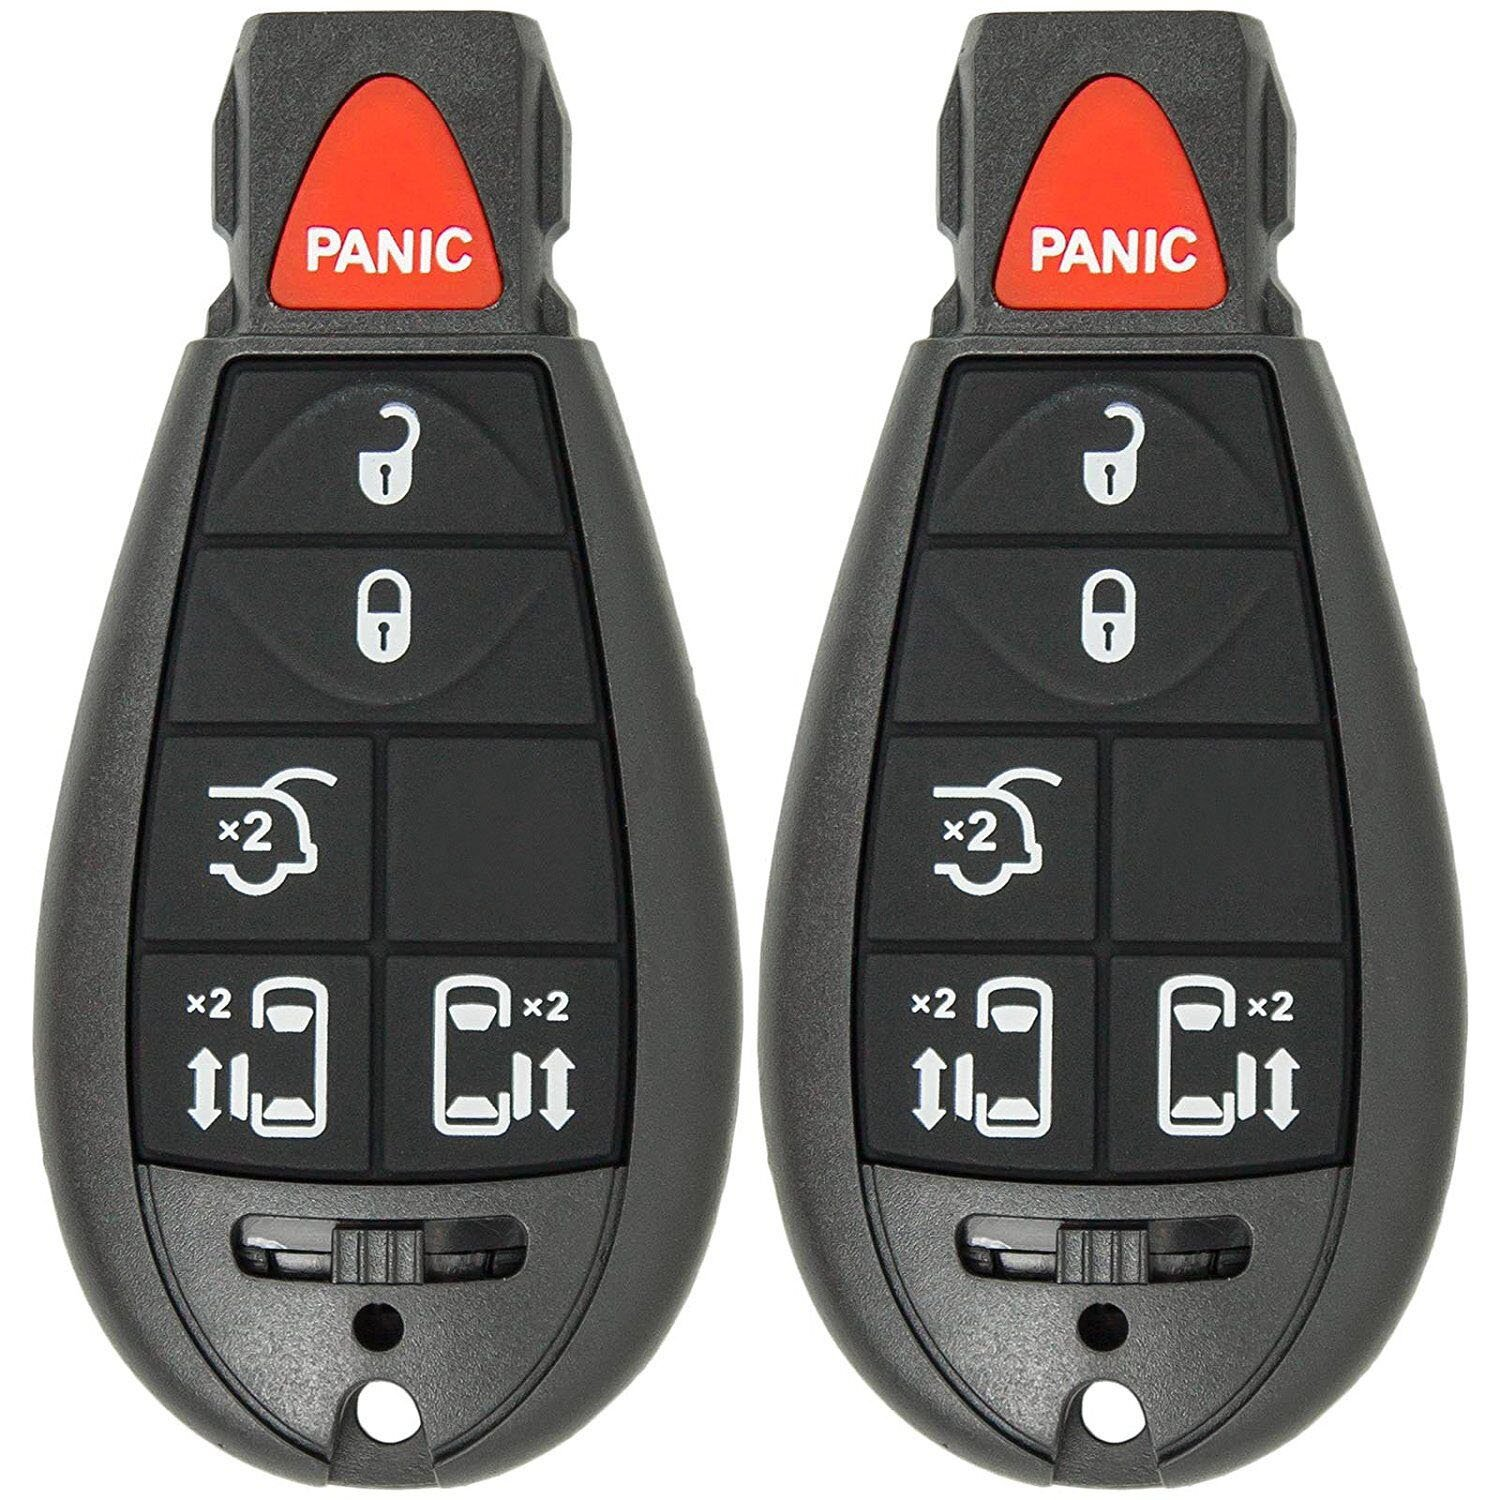 Mushan Pack of 2 Keyless Entry 6 Button Key Remote Control Replacement Fob Transmitter Fits For 2008-2015 Chrysler Town & Country, 2008-2010 Dodge Ram 1500 2500 3500,2008-2013 Jeep Grand Cherokee by Mushan